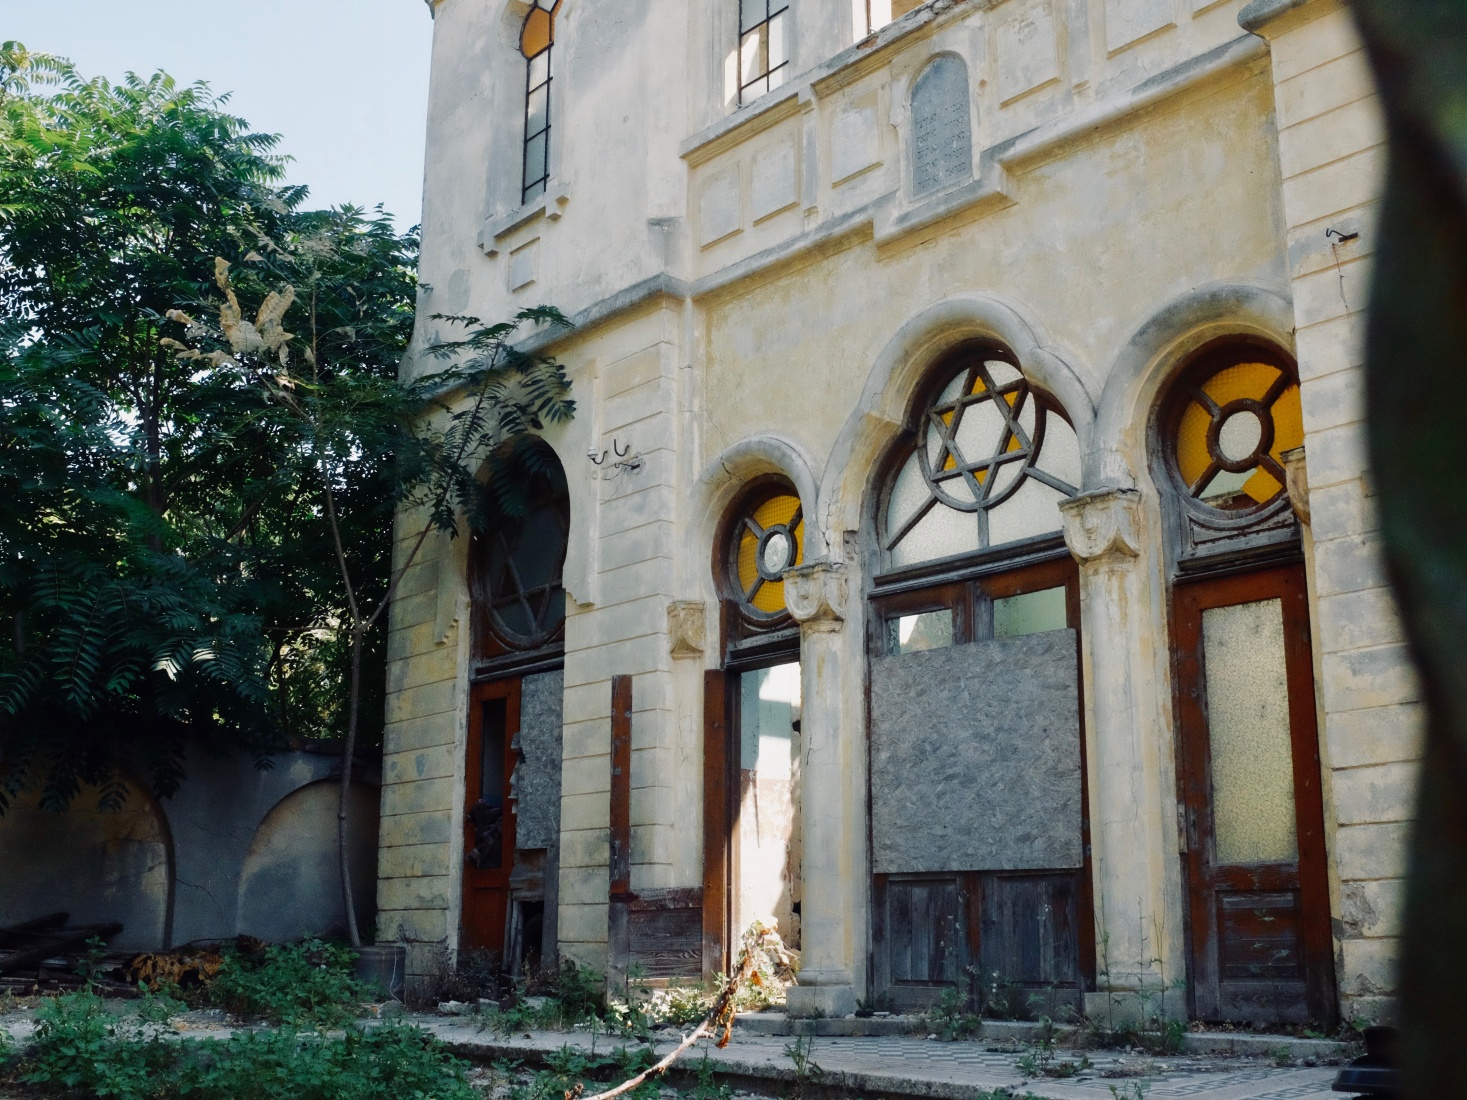 The old synagogue in Constanța, Romania, now derelict and abandoned.